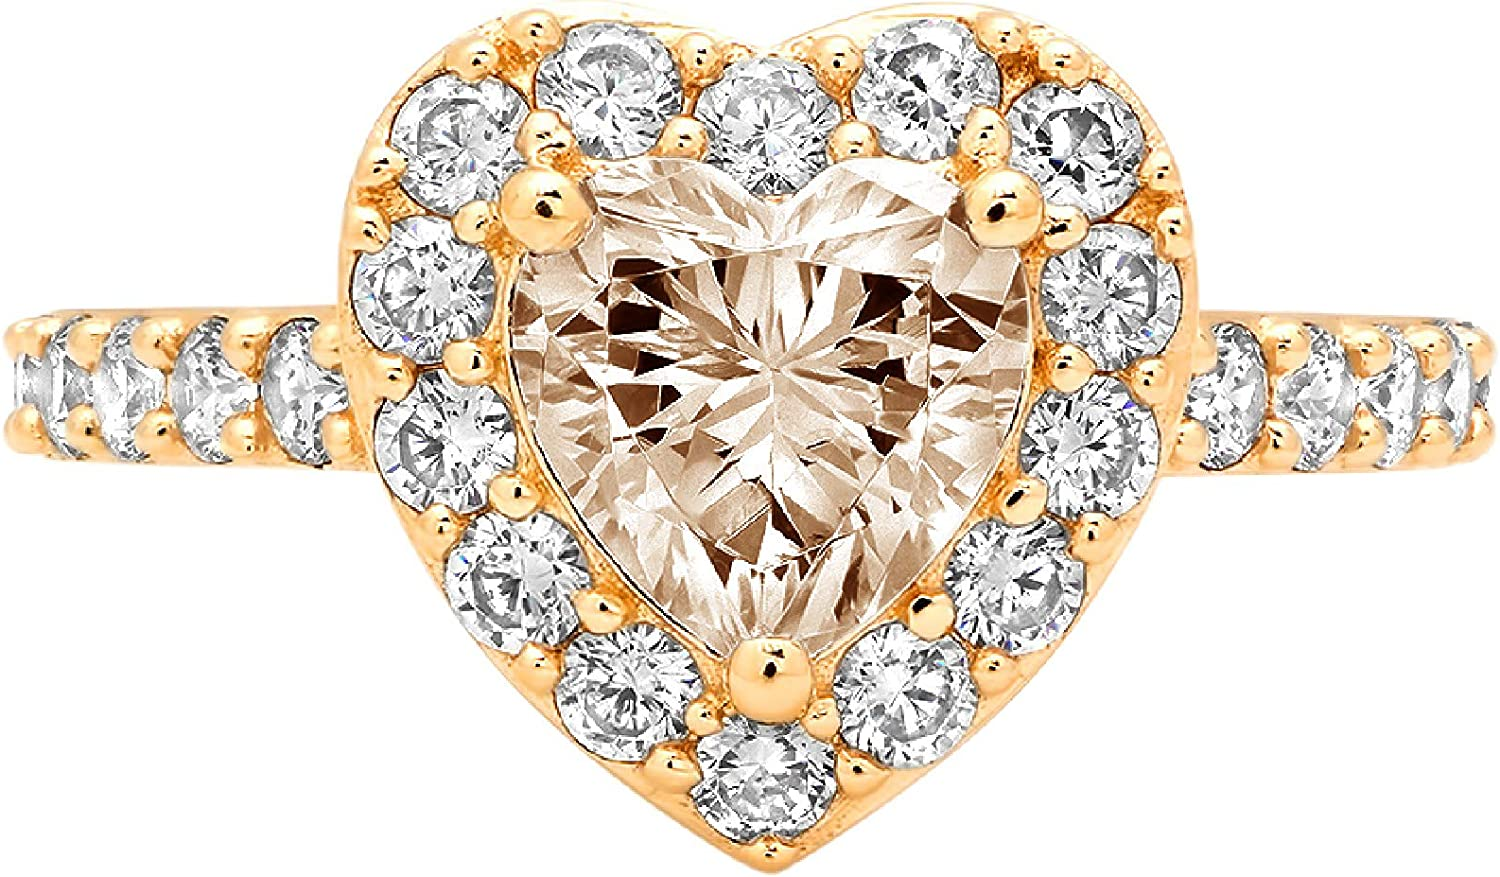 2.22ct Brilliant Heart Cut Solitaire with Accent Halo Brown Champagne Simulated Diamond CZ VVS1 Designer Modern Statement Ring Solid 14k Yellow Gold Clara Pucci